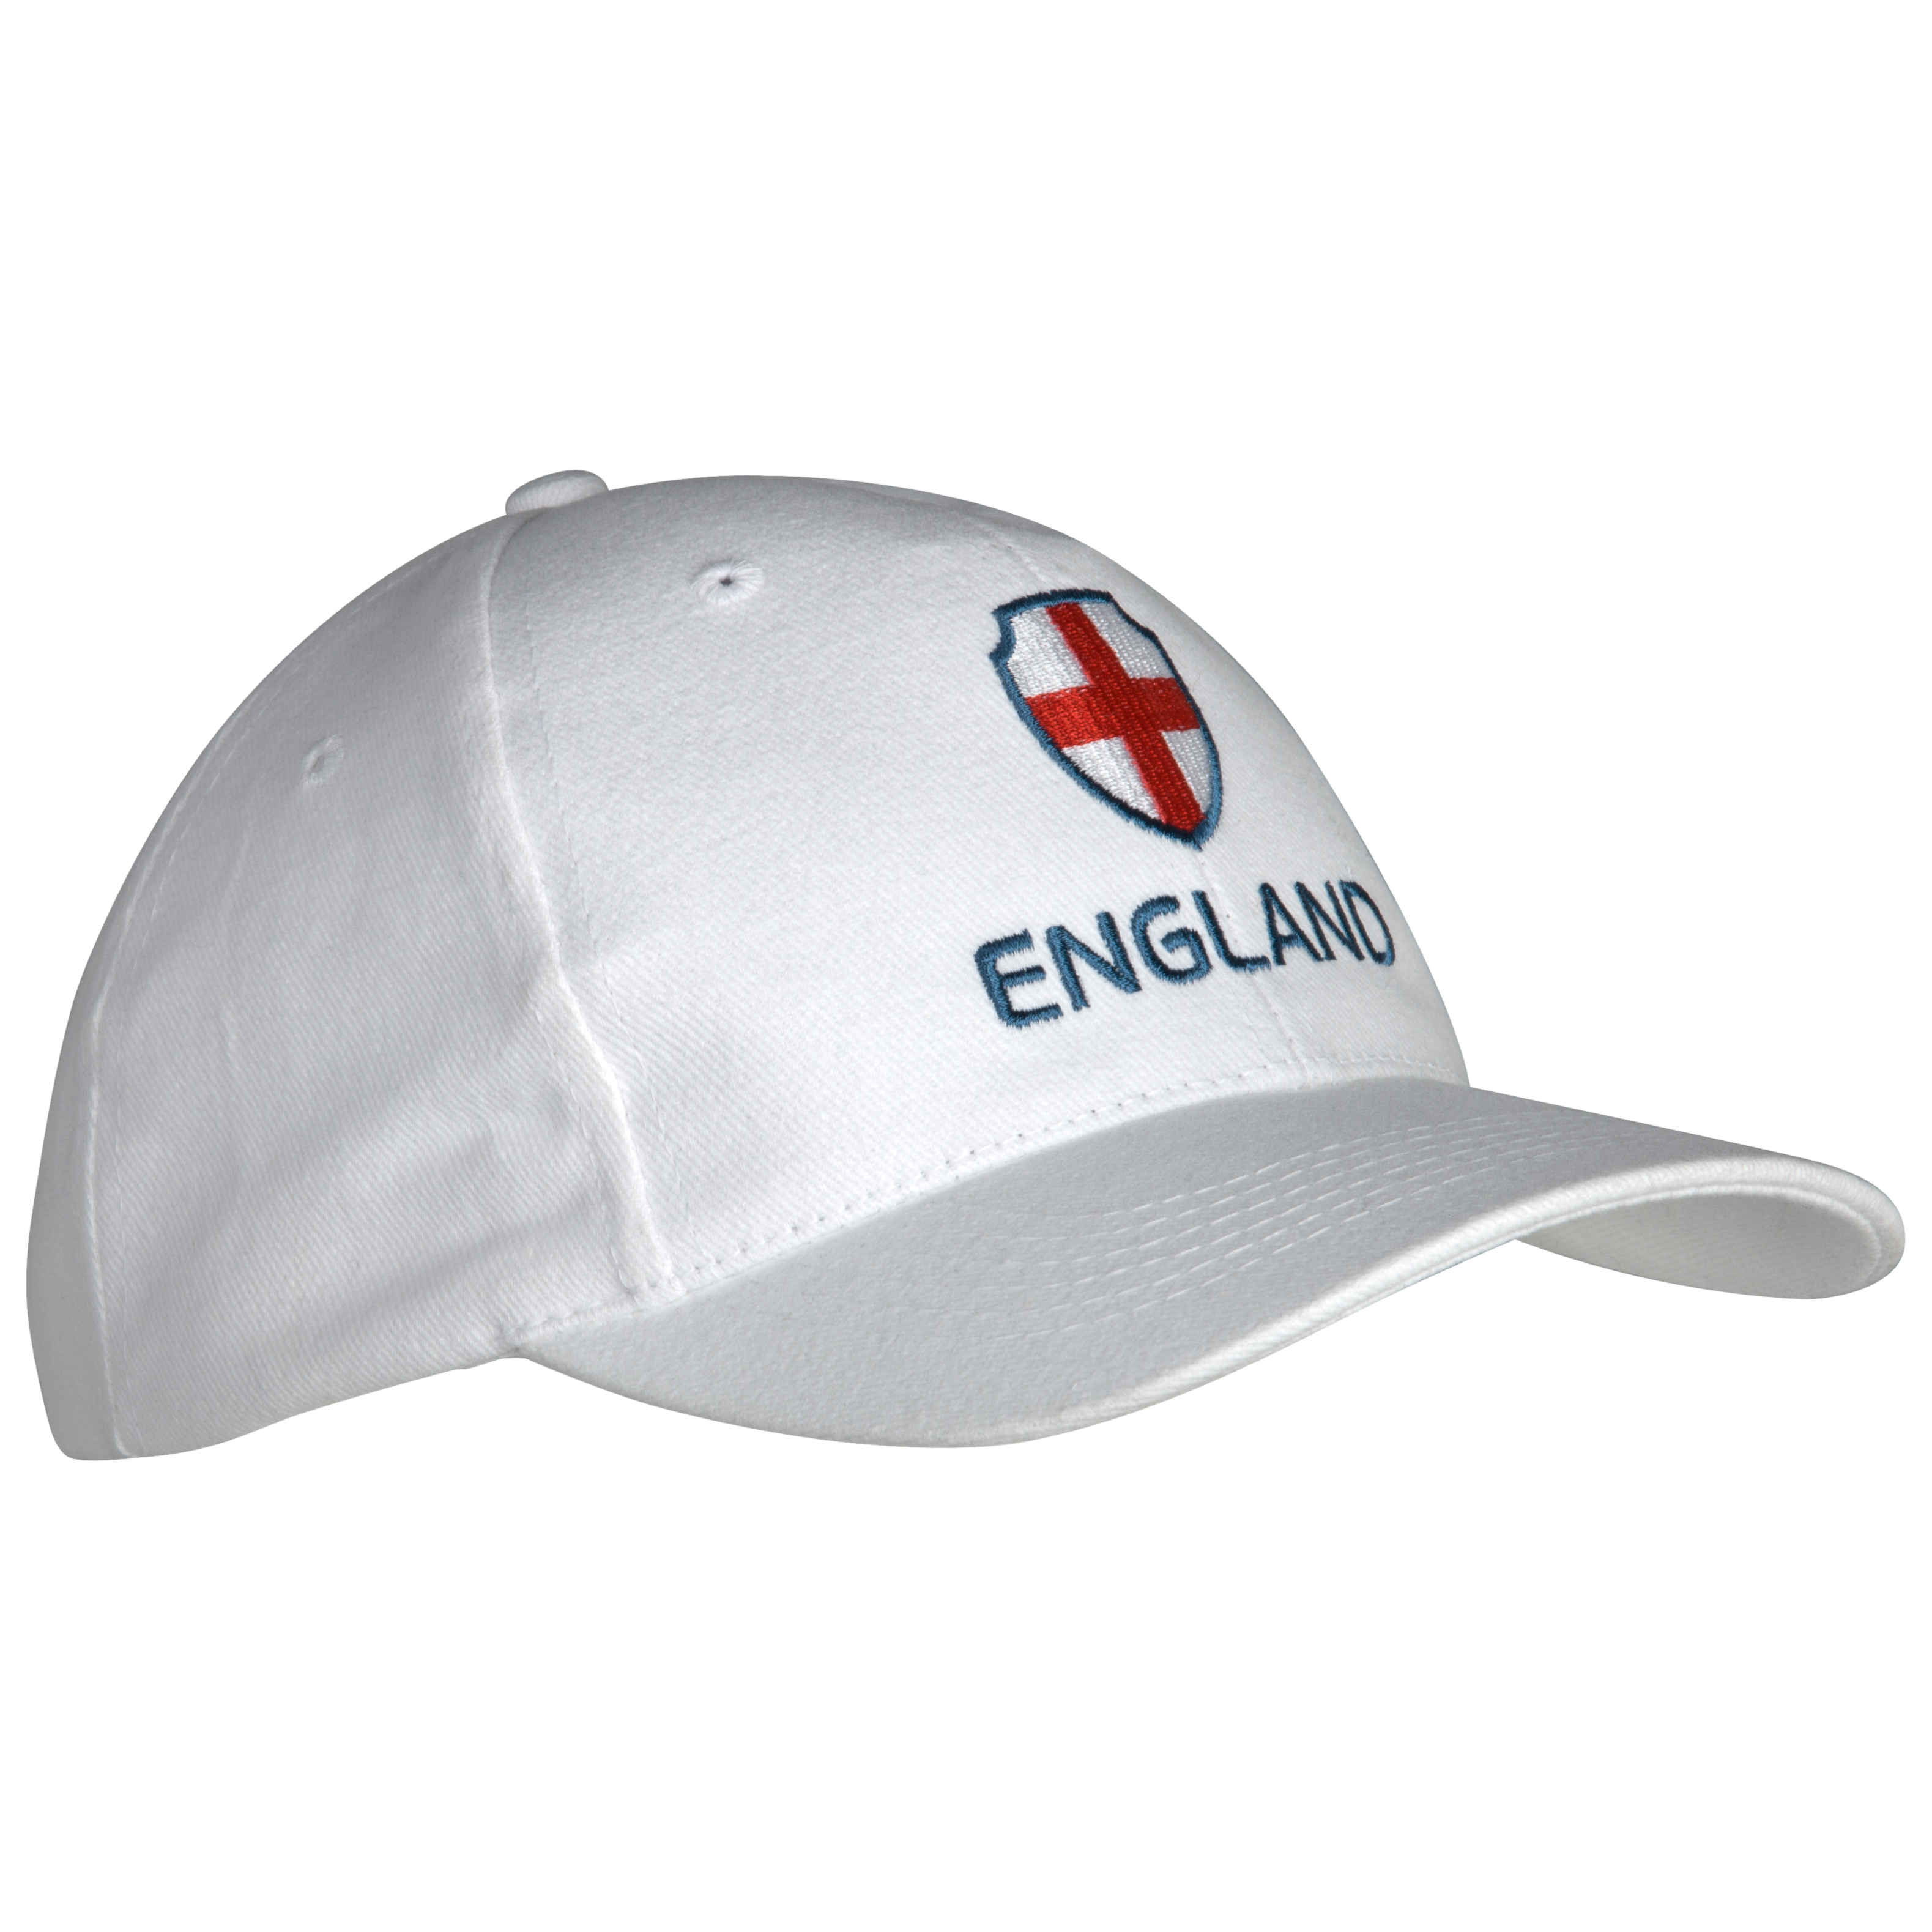 Euro 2012 England Cap - White/Blue/Red